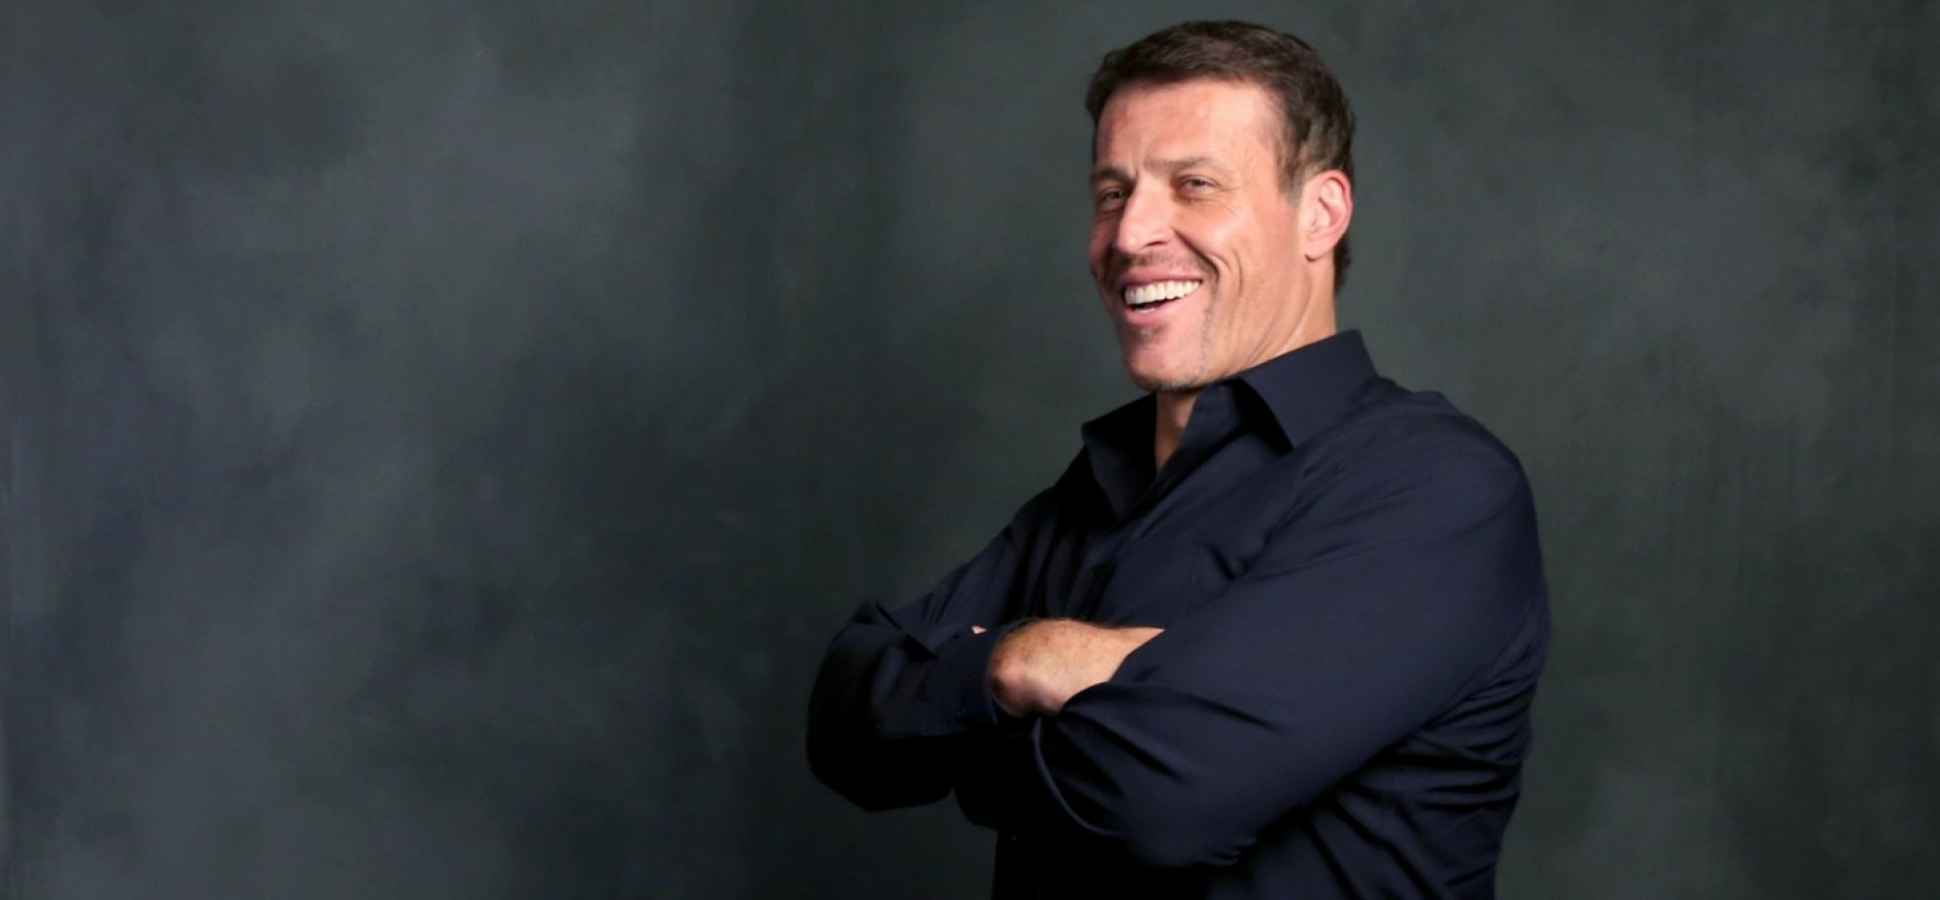 Want to Raise Successful Kids? Tony Robbins Says Do This 1 Simple Thing